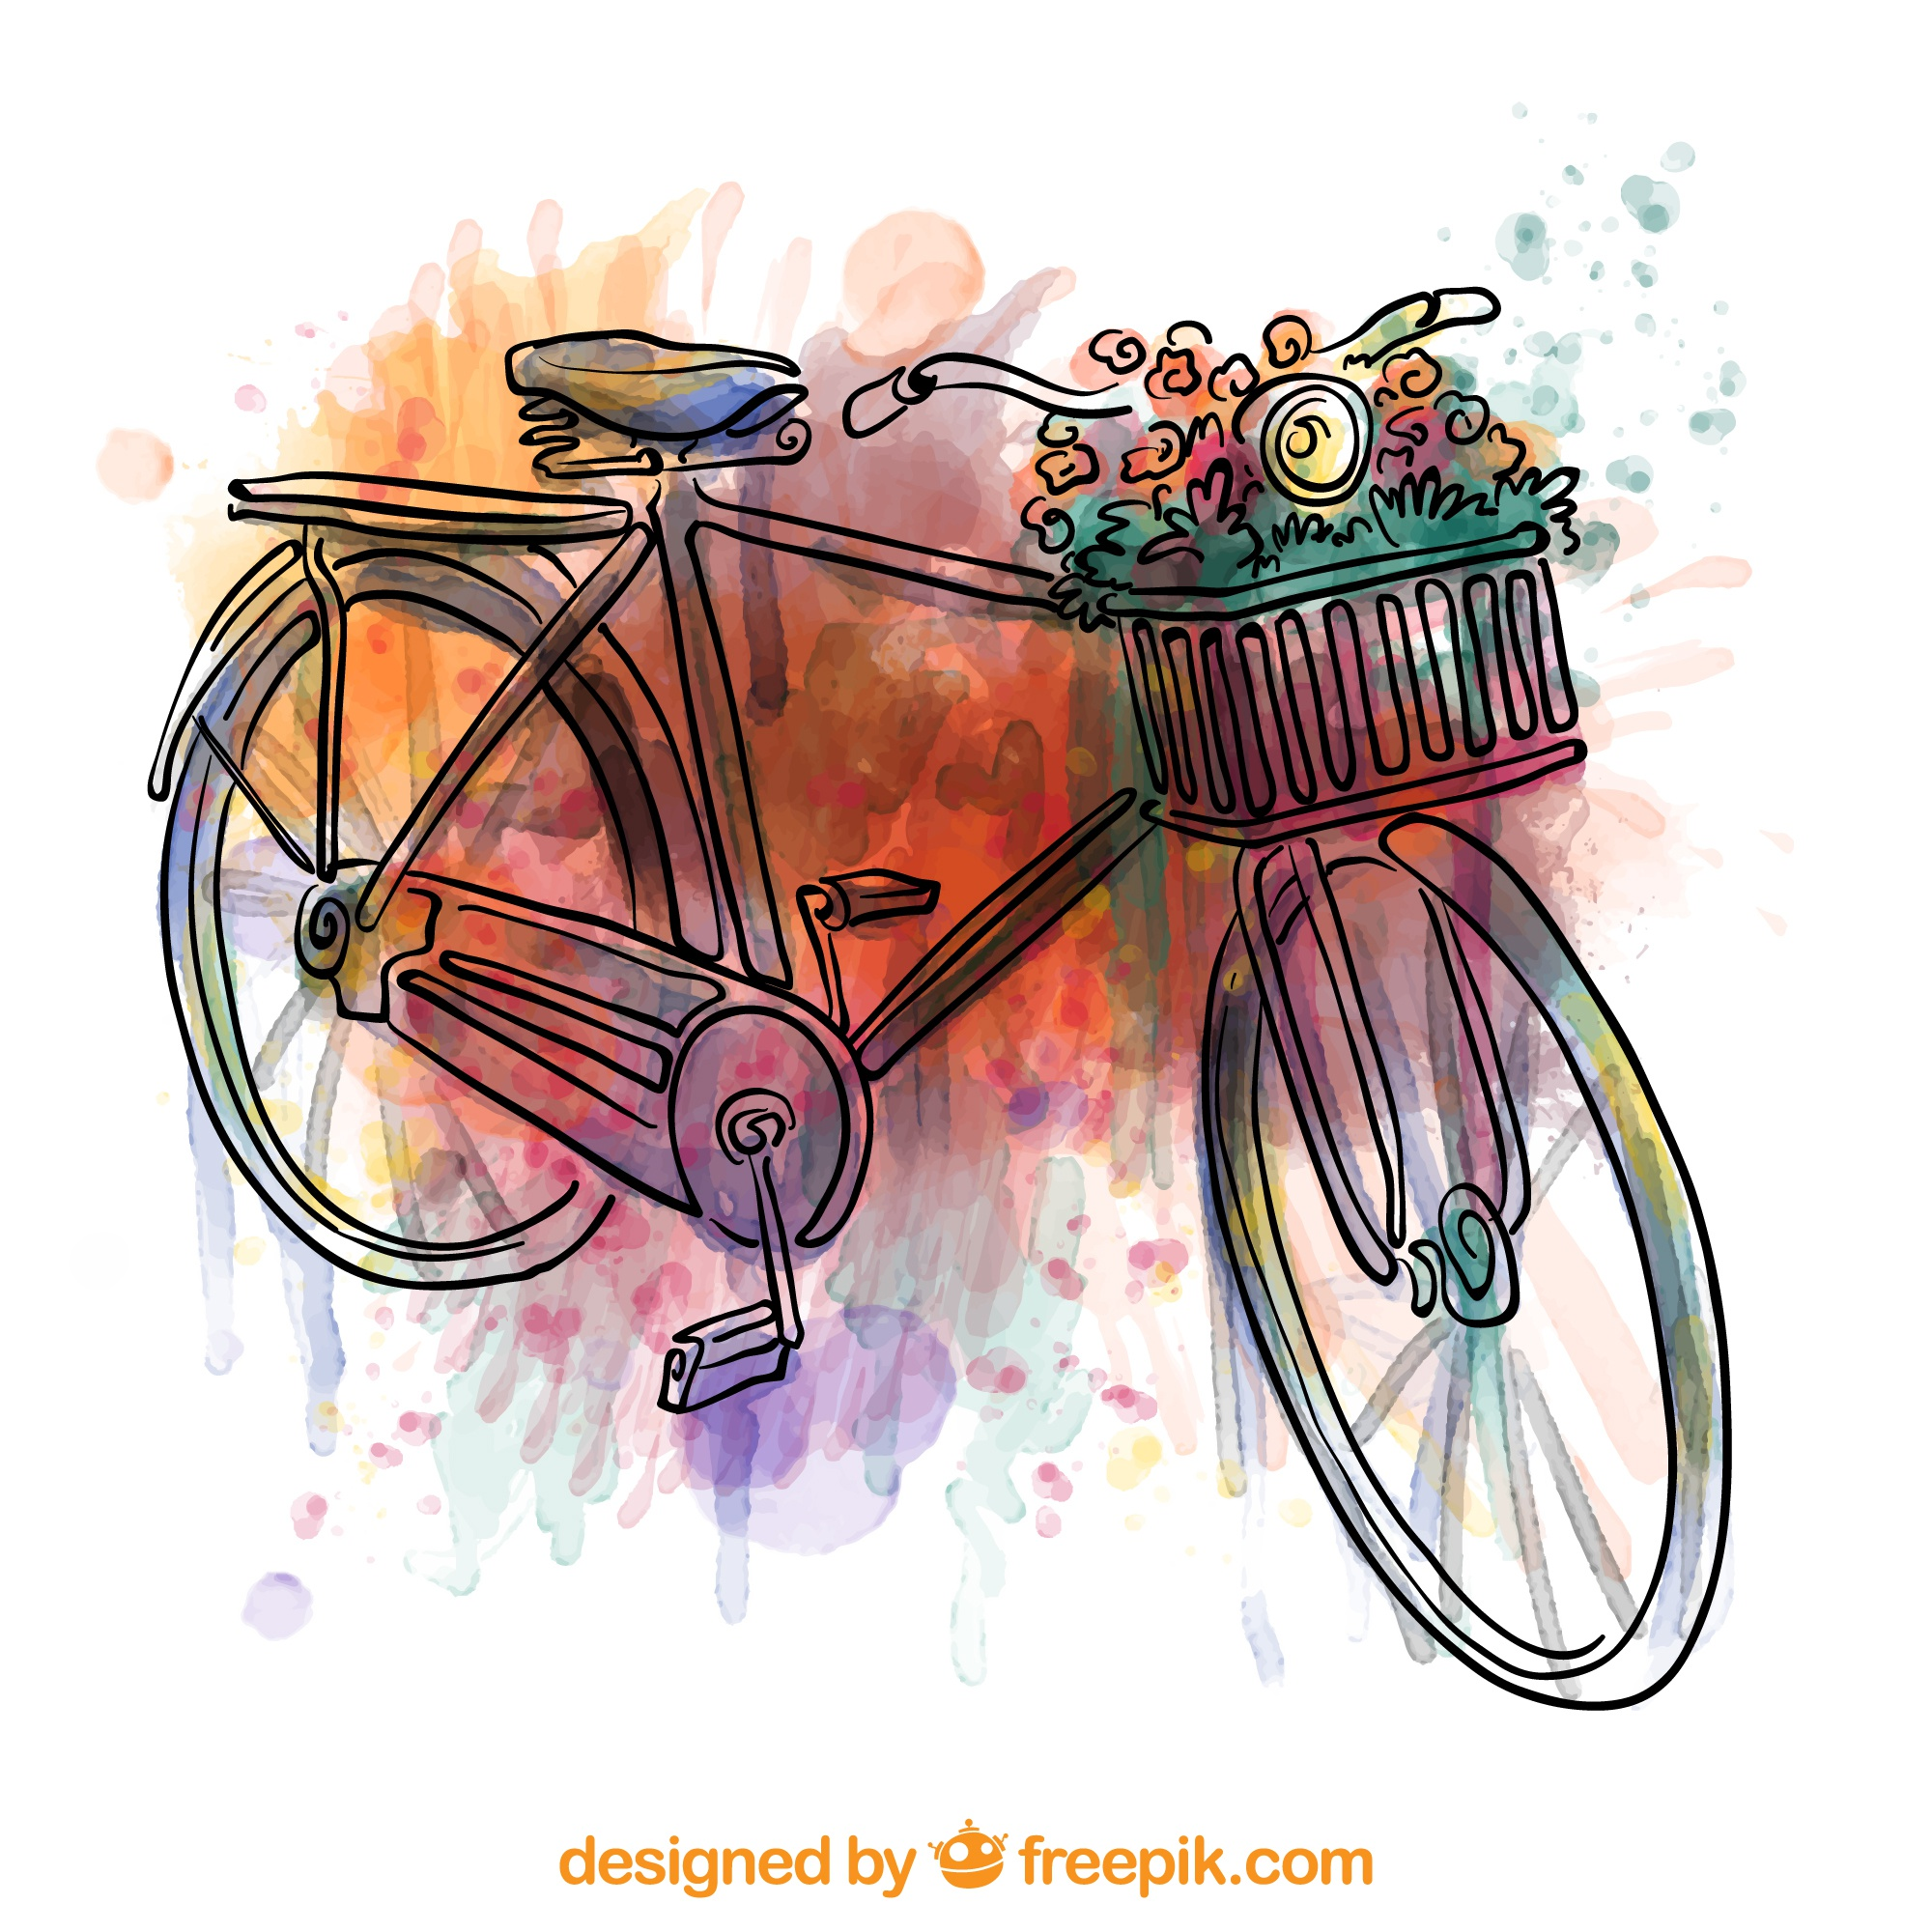 Hand painted bike with watercolor splashes